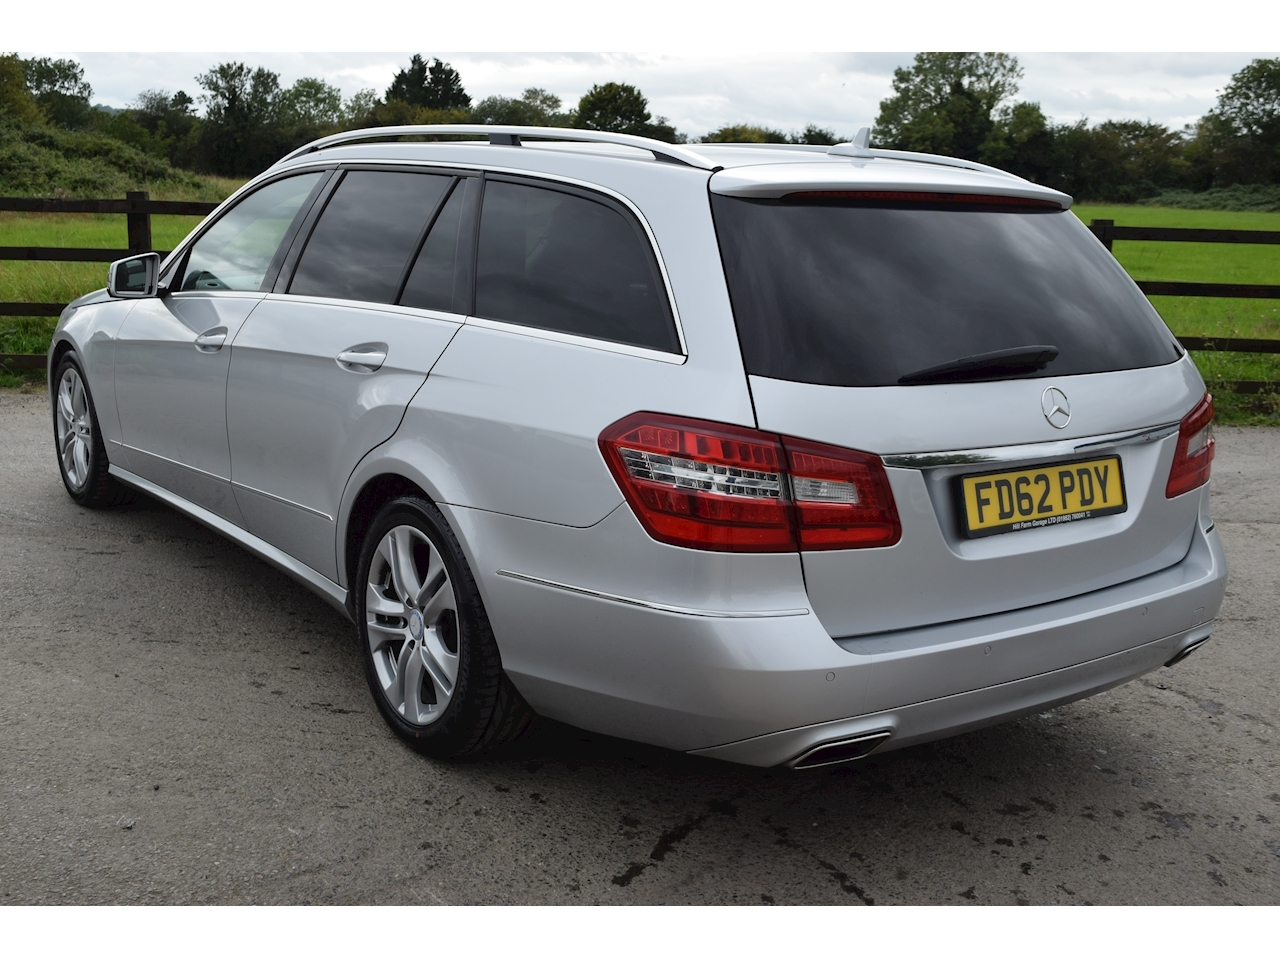 Mercedes-Benz E Class Avantgarde Estate 2.1 7G-Tronic Plus Diesel